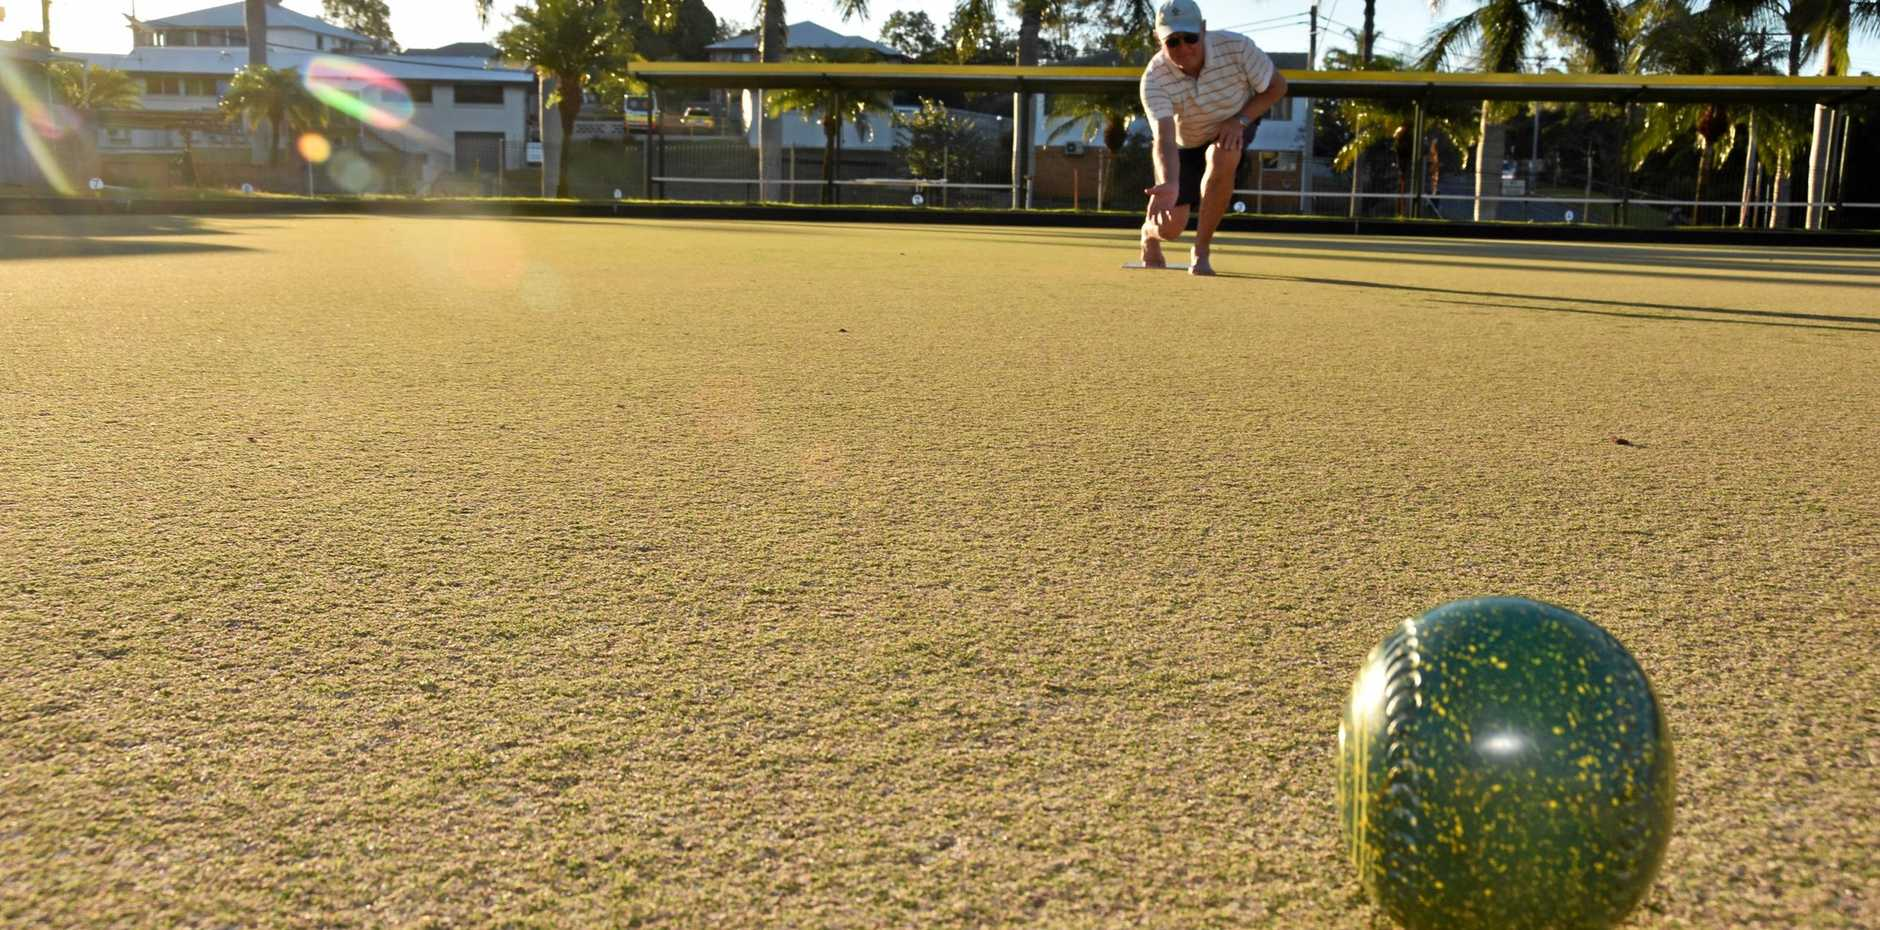 Gladstone Bowls Club is another step closer to making big changes to the facility after the council granted it a 30-year lease.